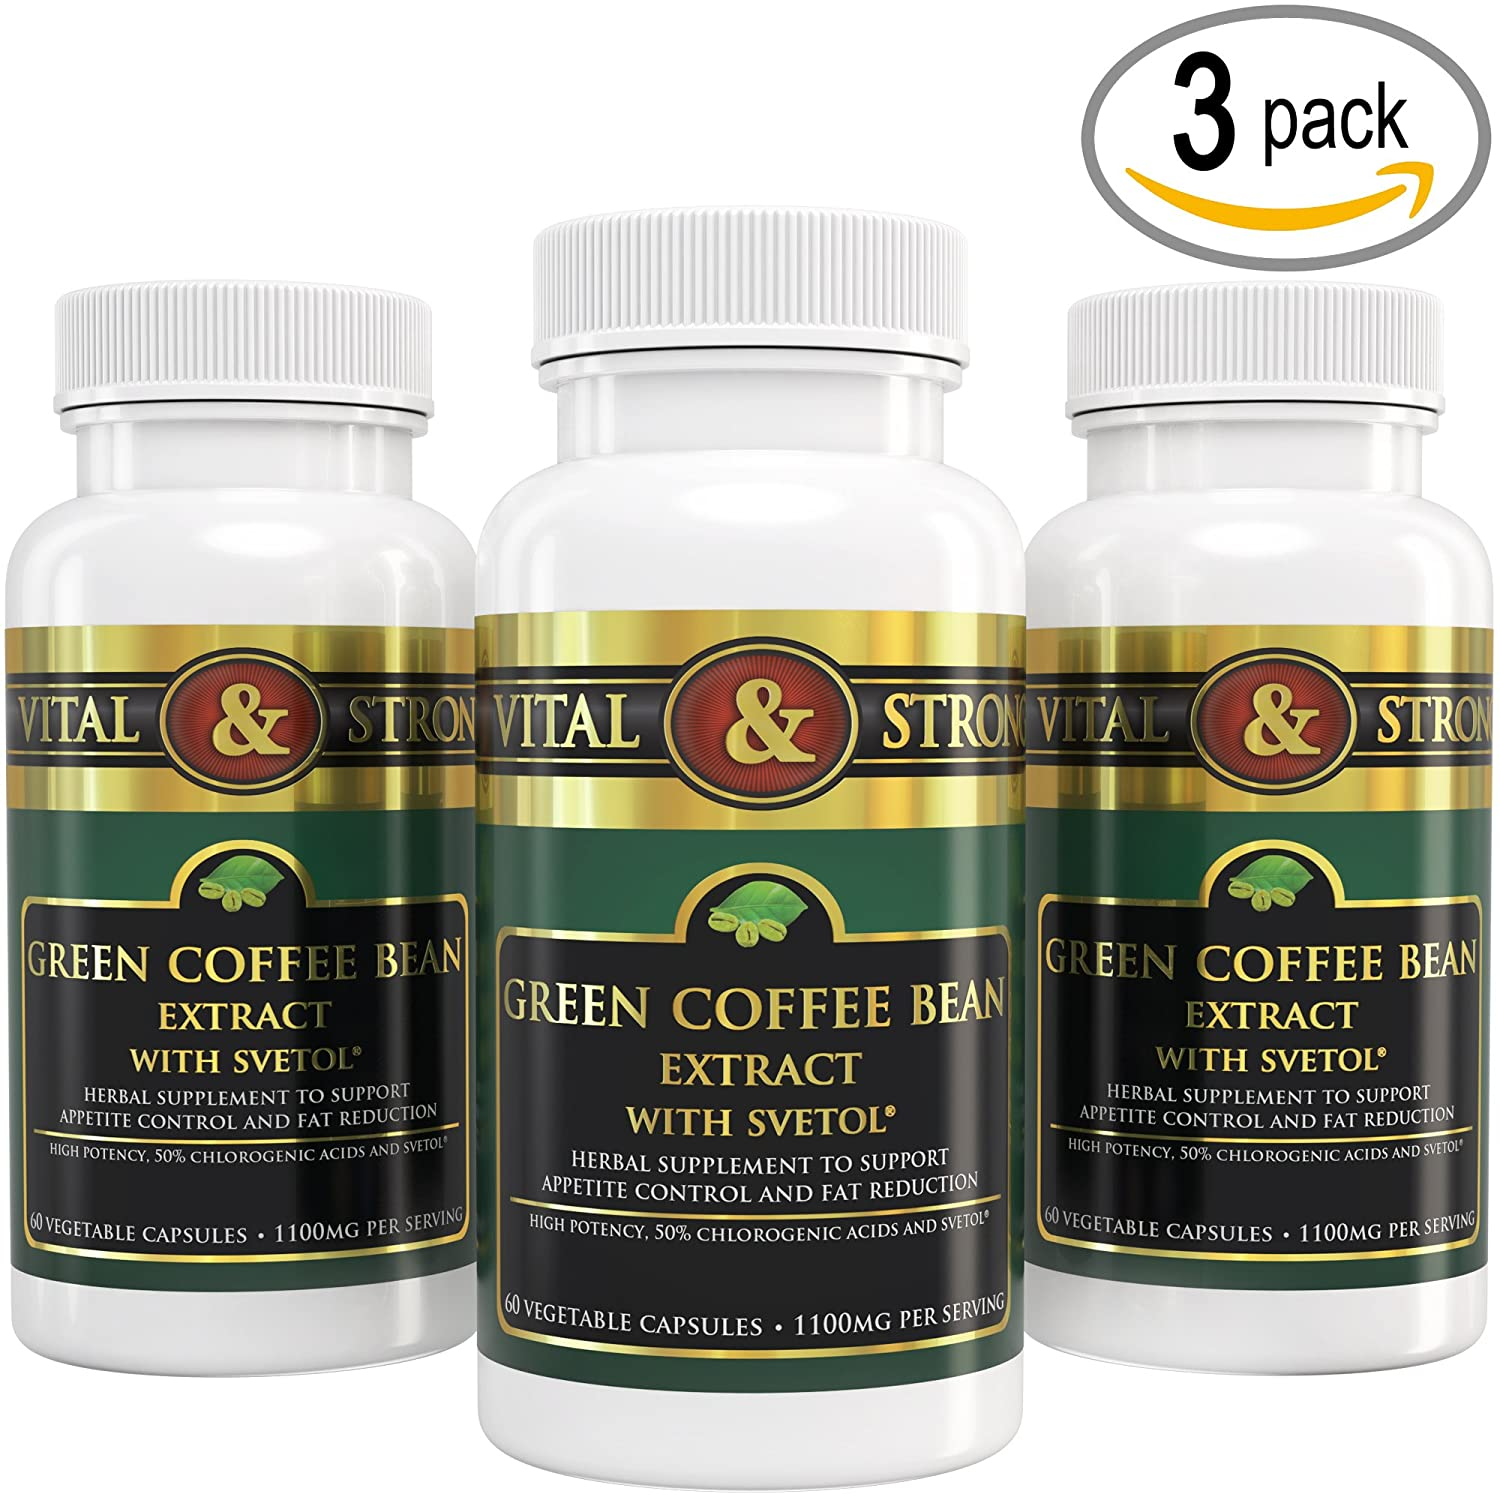 Liquid green slimming coffee ExtraGreen: review, effectiveness, where to buy the original 48